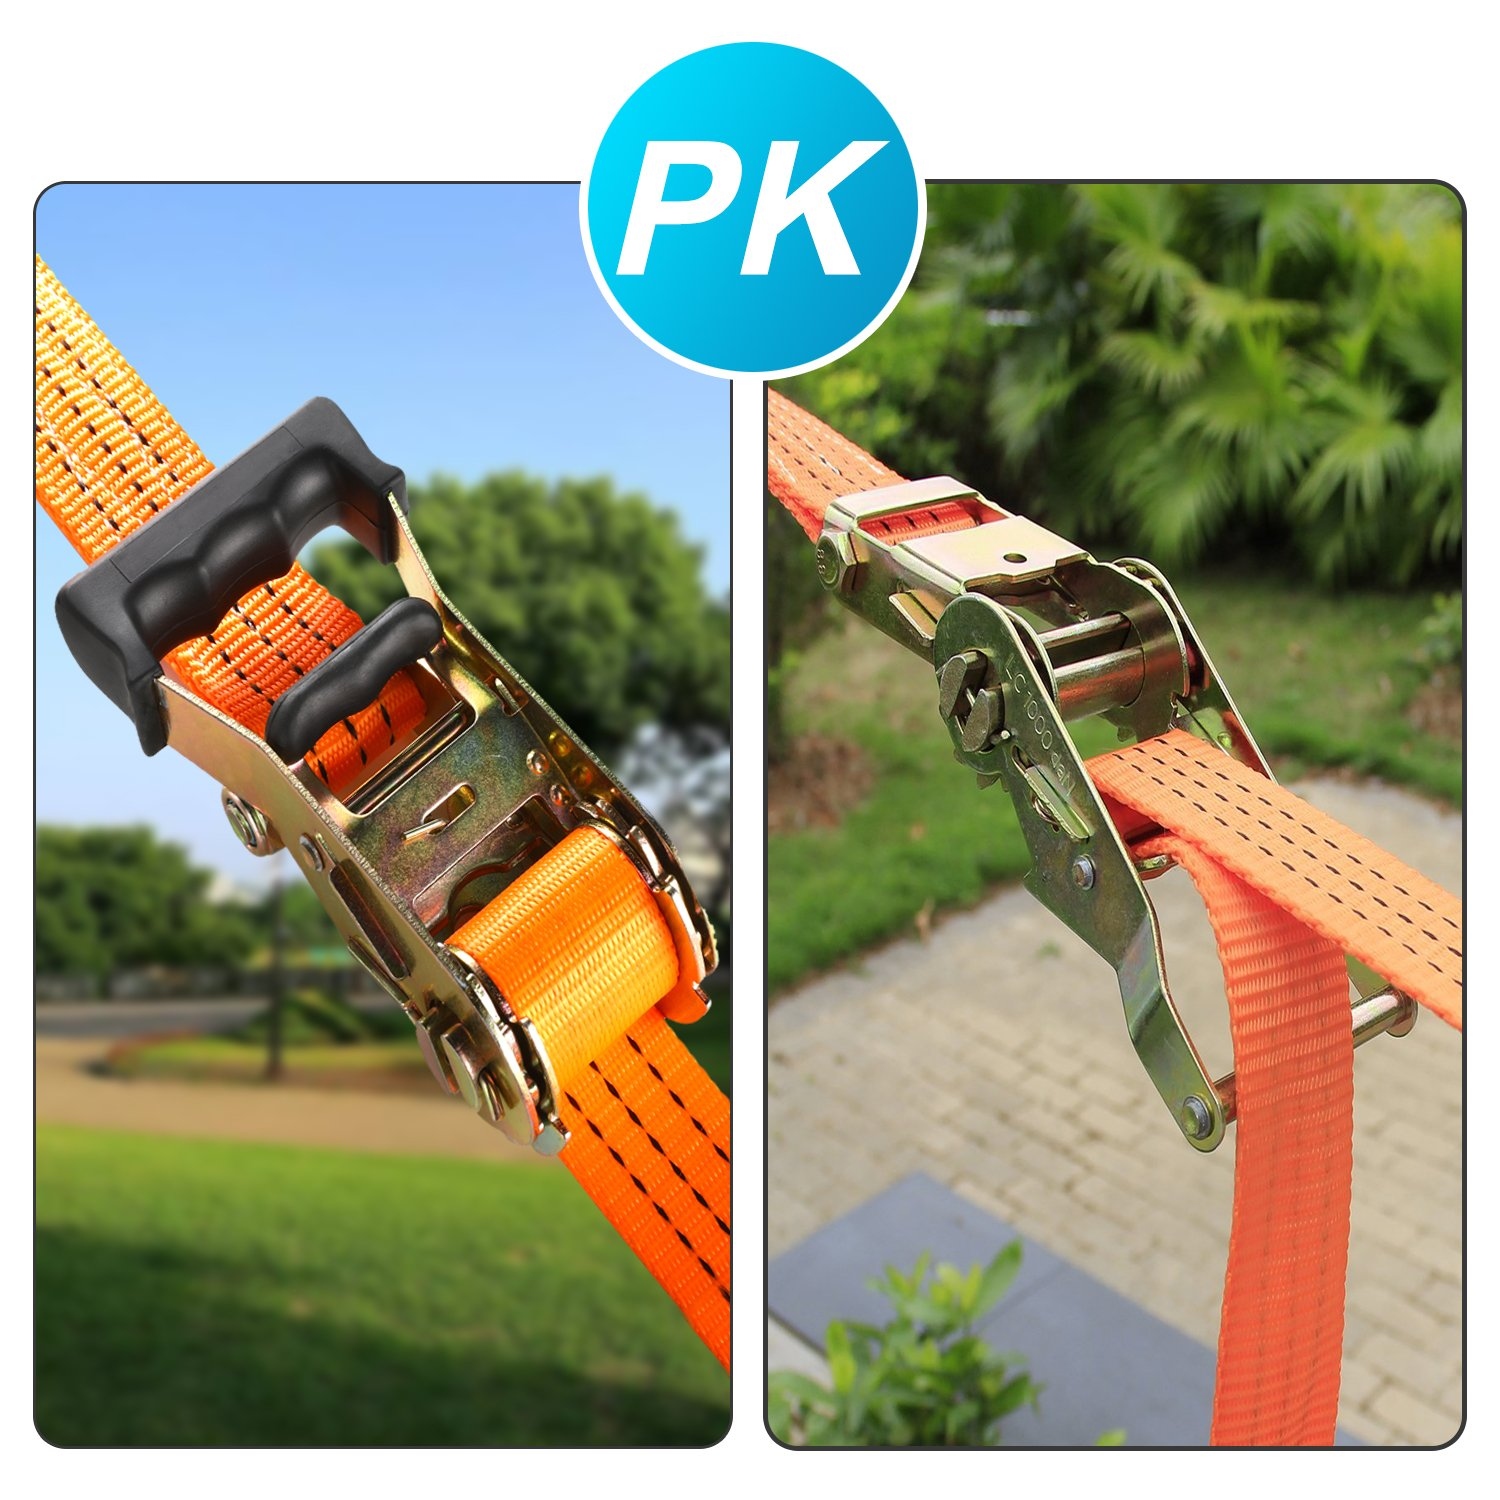 PACKGOUT Slackline, 45' Obstacles Course for Kids Warrior Training Equipment Swing Hanging Monkey Bar Kits, Gifts for Boys and Girls Included Carrying Bag and Tree Protectors by PACKGOUT (Image #5)